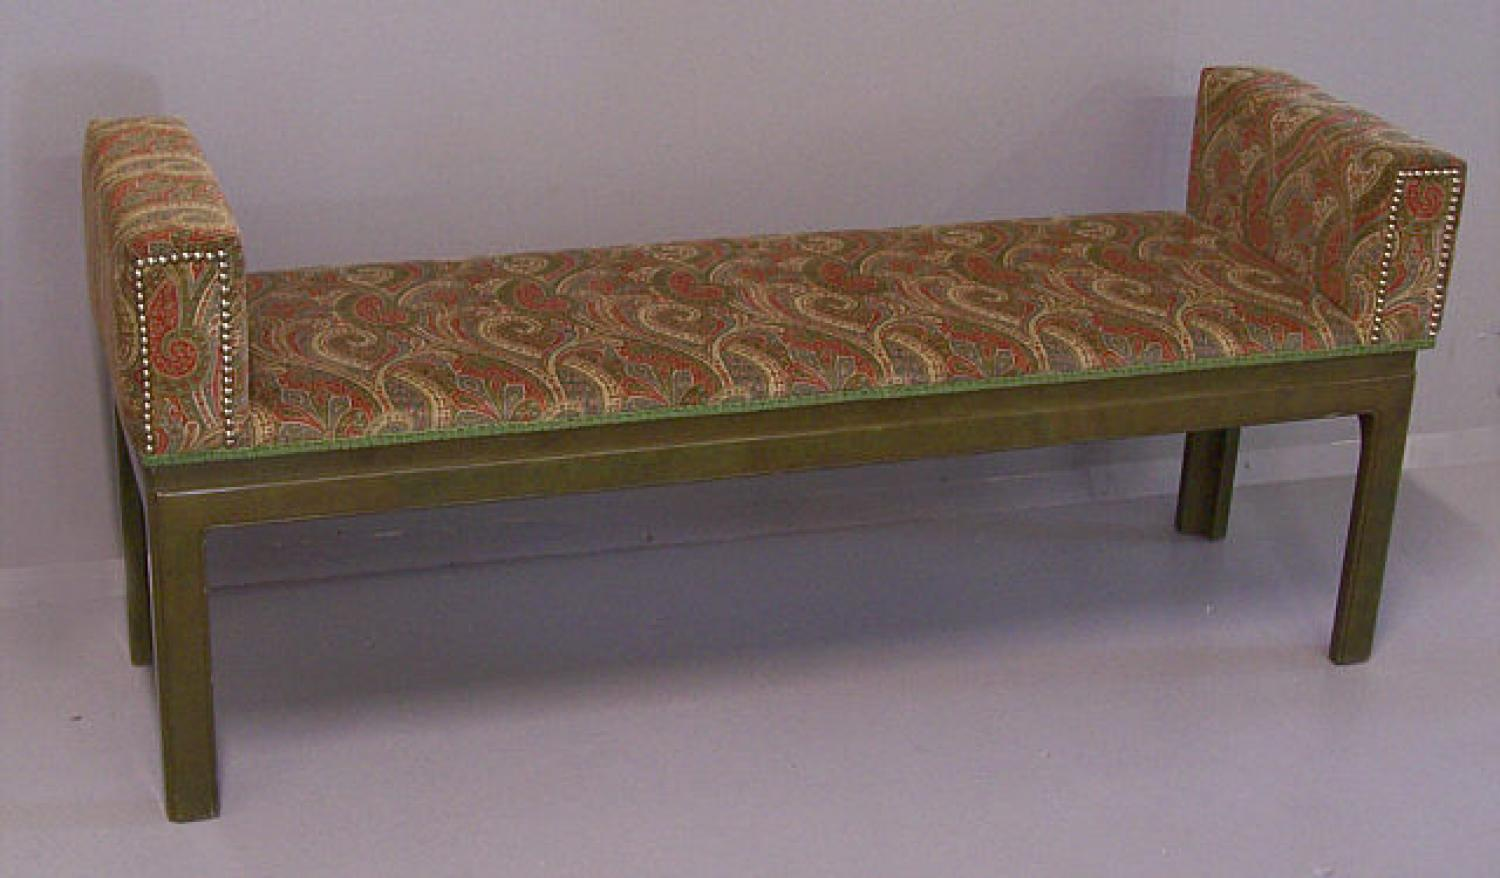 Beacon Hill window bench in paisley upholstery